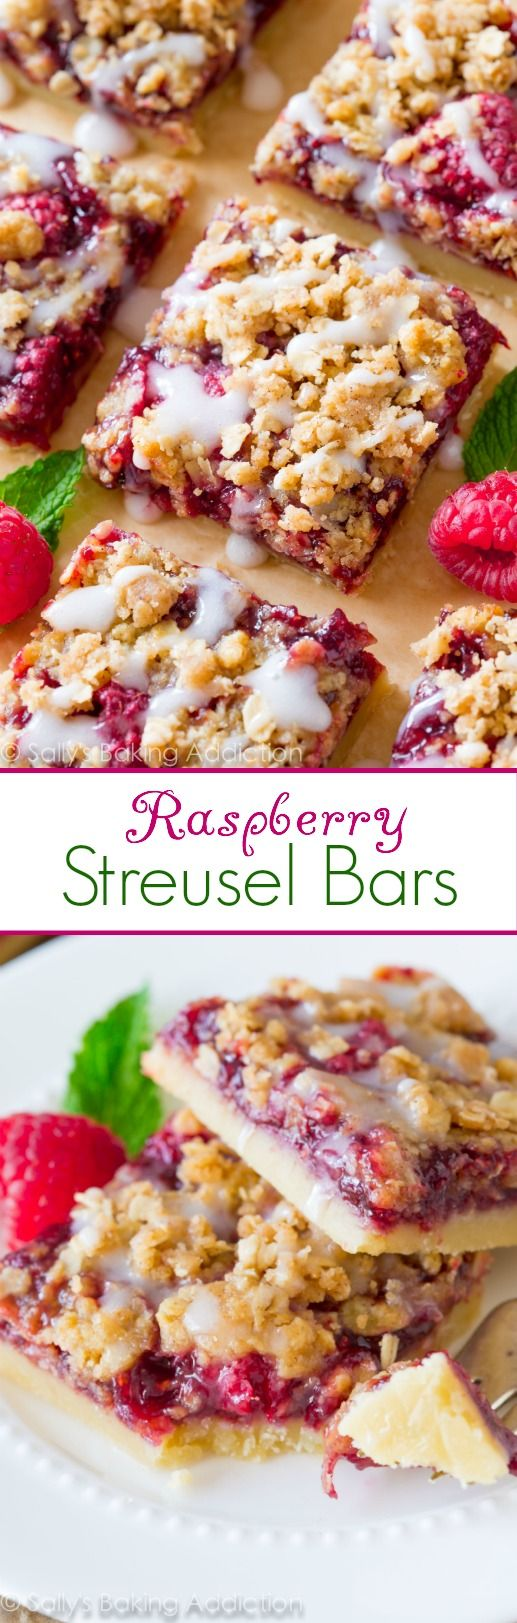 Raspberry Streusel Bars Dessert Recipe via Sally's Baking Addiction - ALWAYS loved Raspberry Streusel Bars are so simple to make and are even better with brown sugar streusel and sweet vanilla glaze on top! #dessertbars #cookiebars #barsrecipes #dessertforacrowd #partydesserts #christmasdesserts #holidaydesserts #onepandesserts